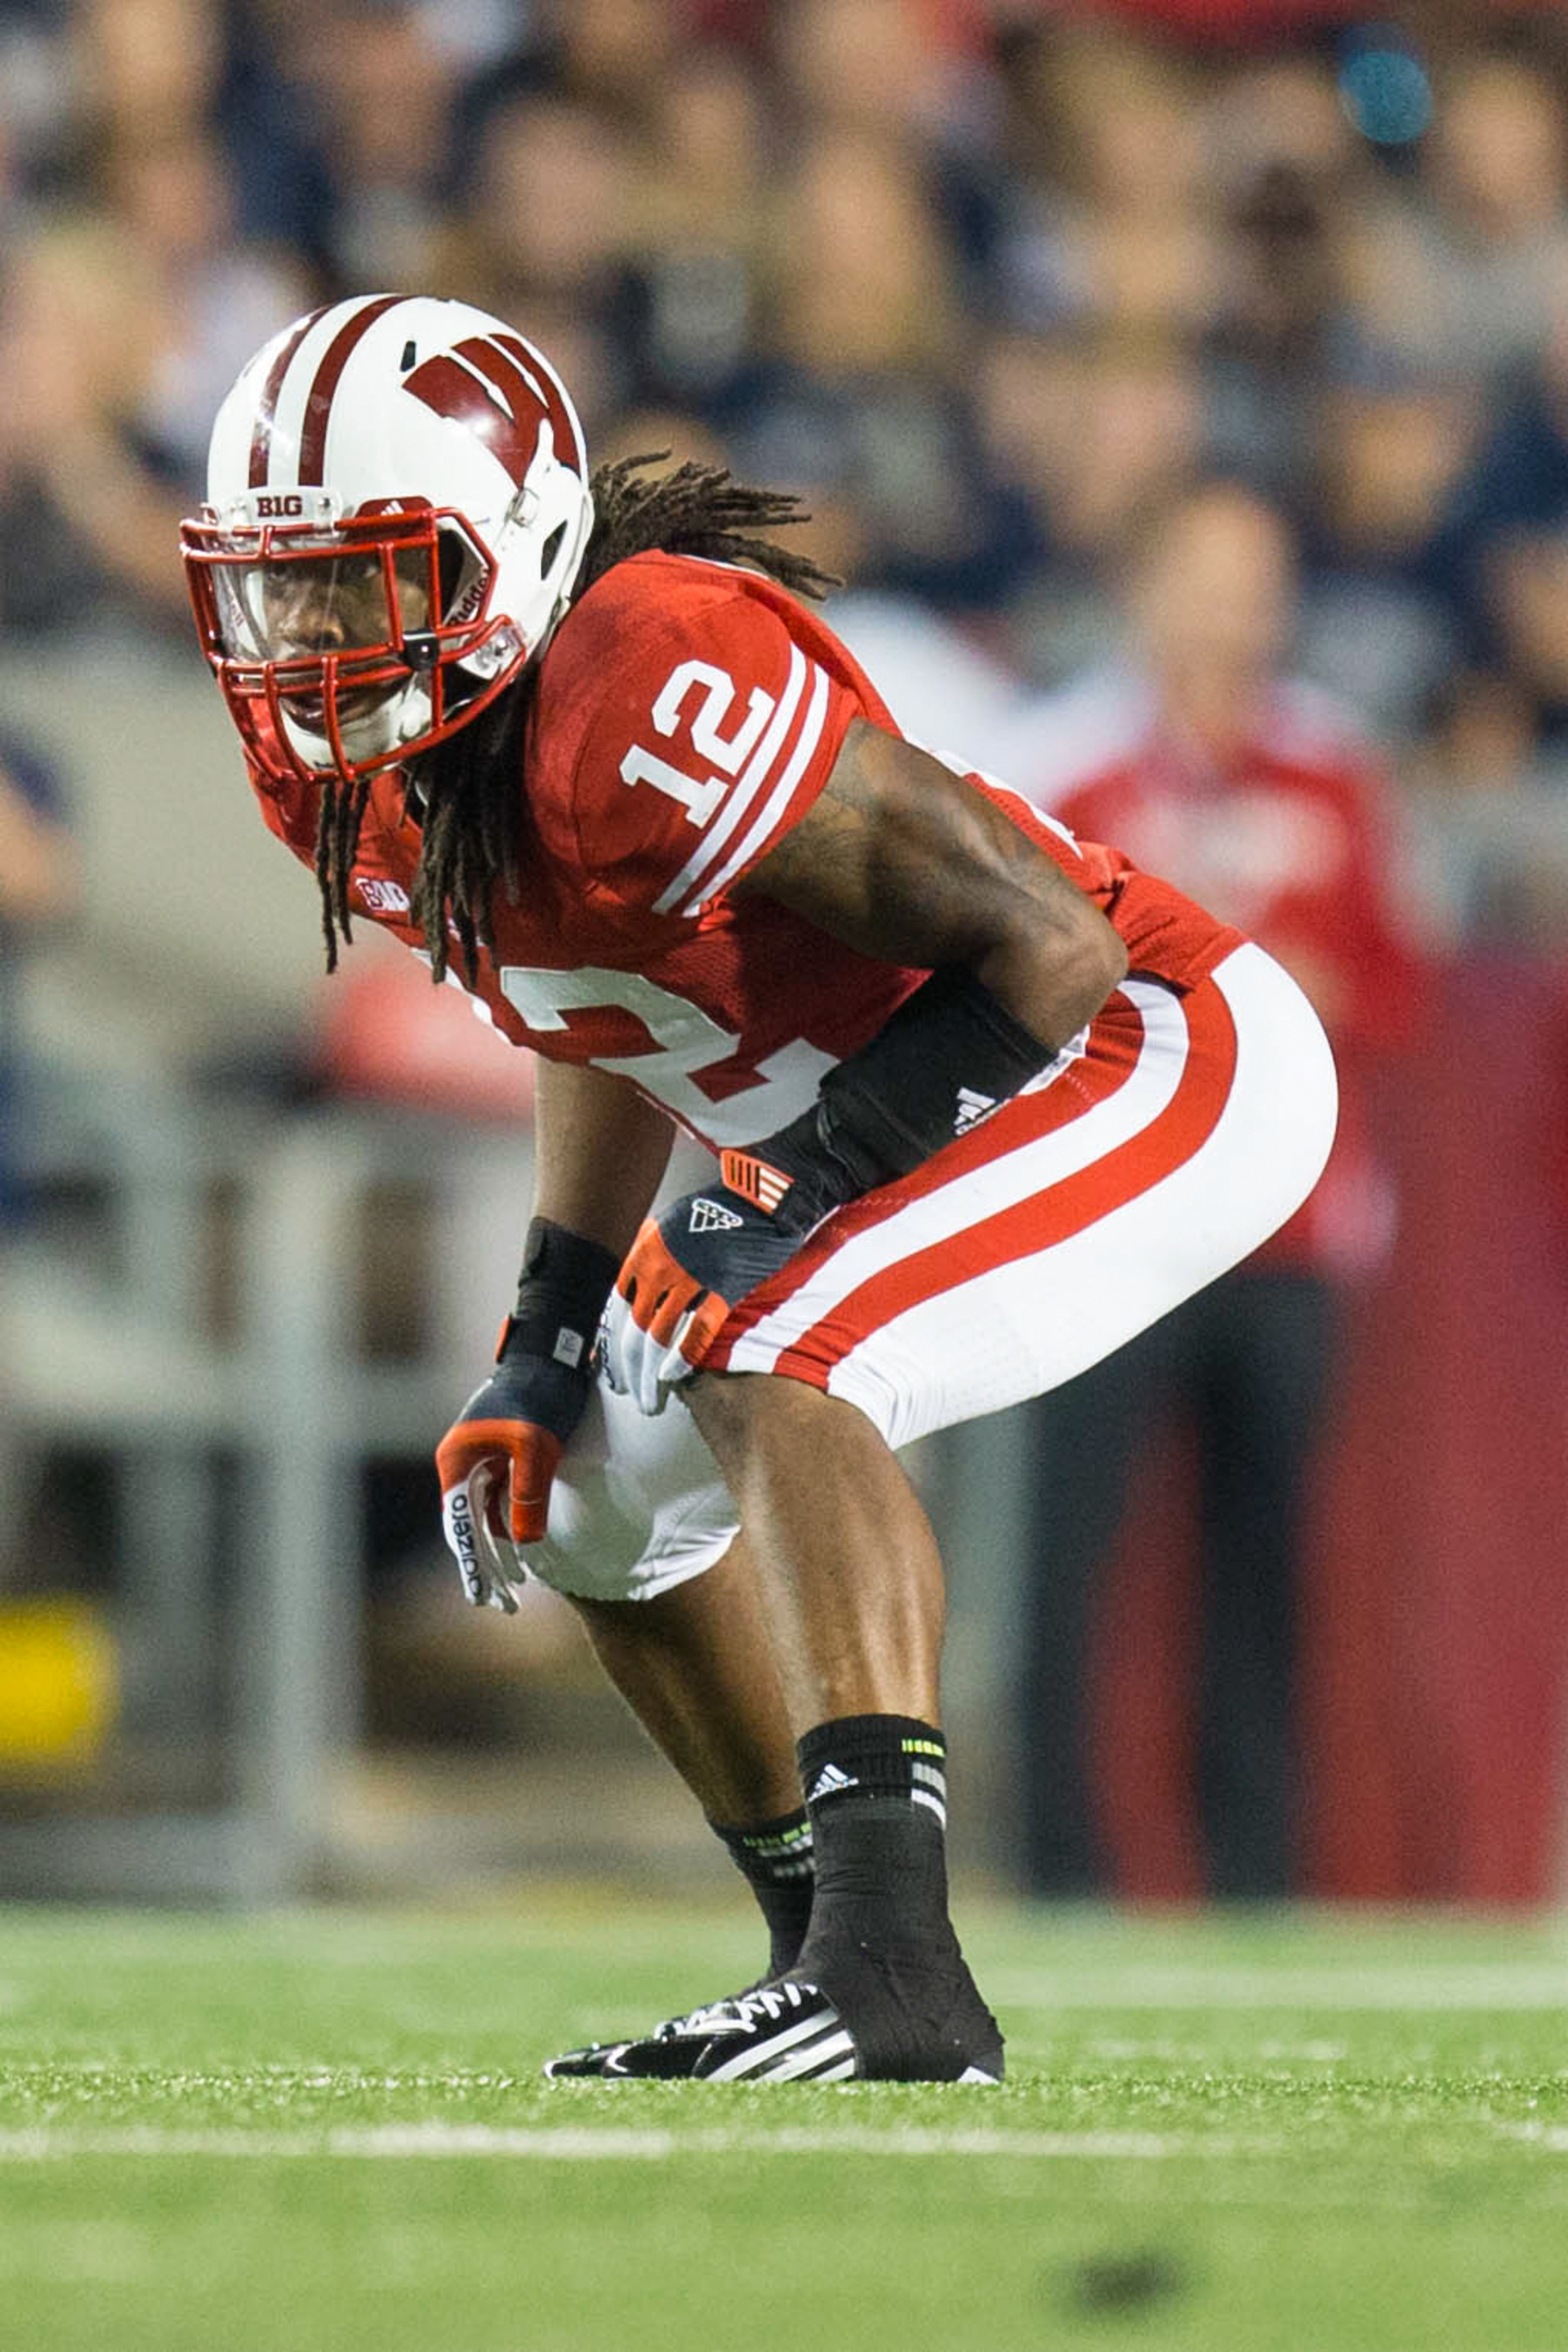 Free safety Dezmen Southward says improving Wisconsin's secondary is simply a matter of execution.